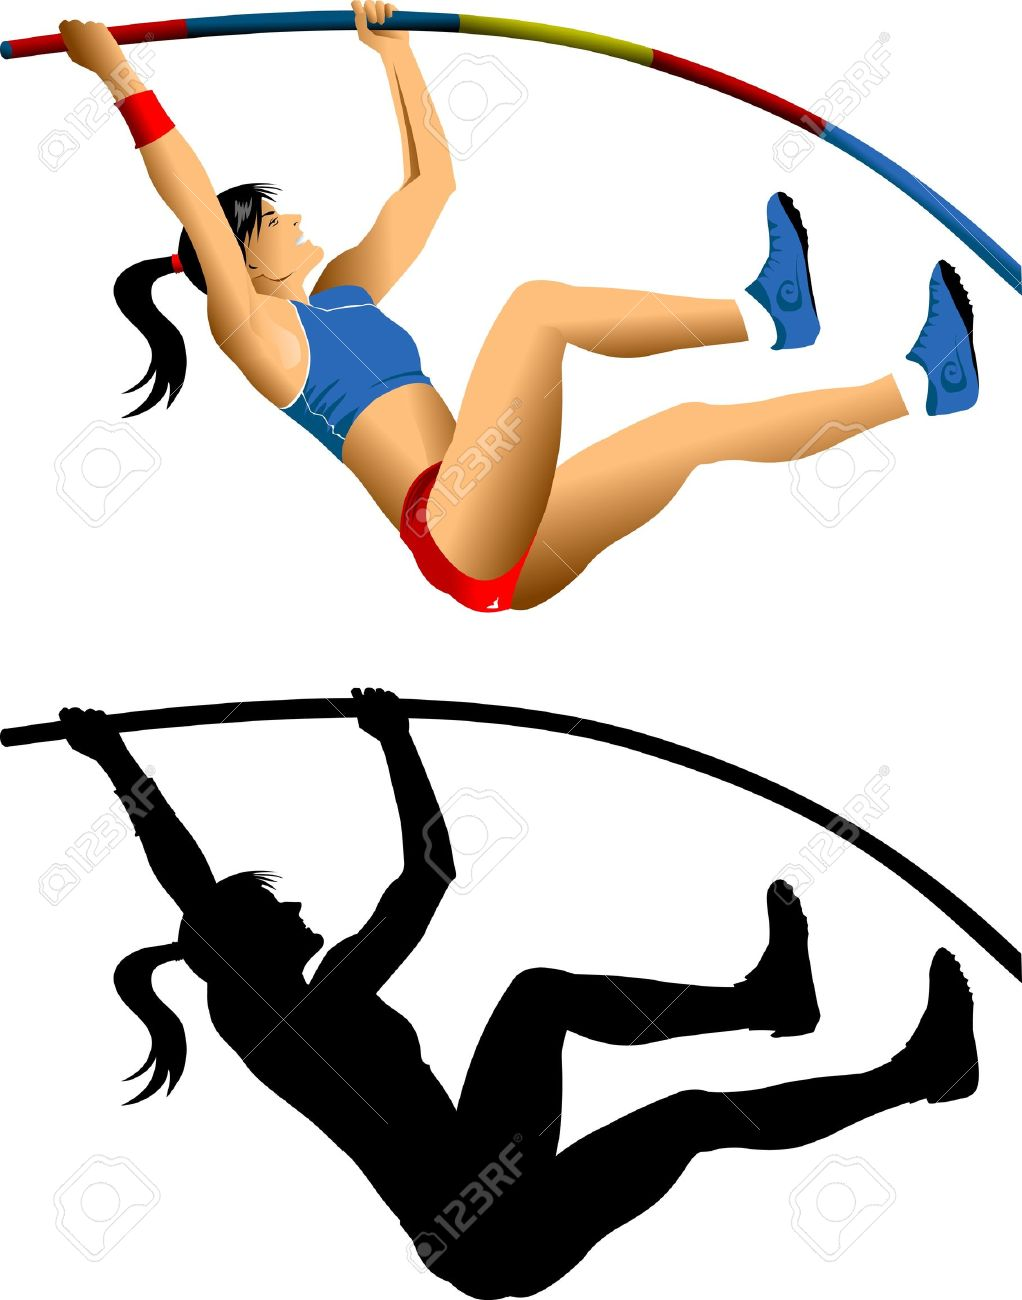 Pole vault clipart free svg download Pole vault girl clipart - ClipartFest svg download